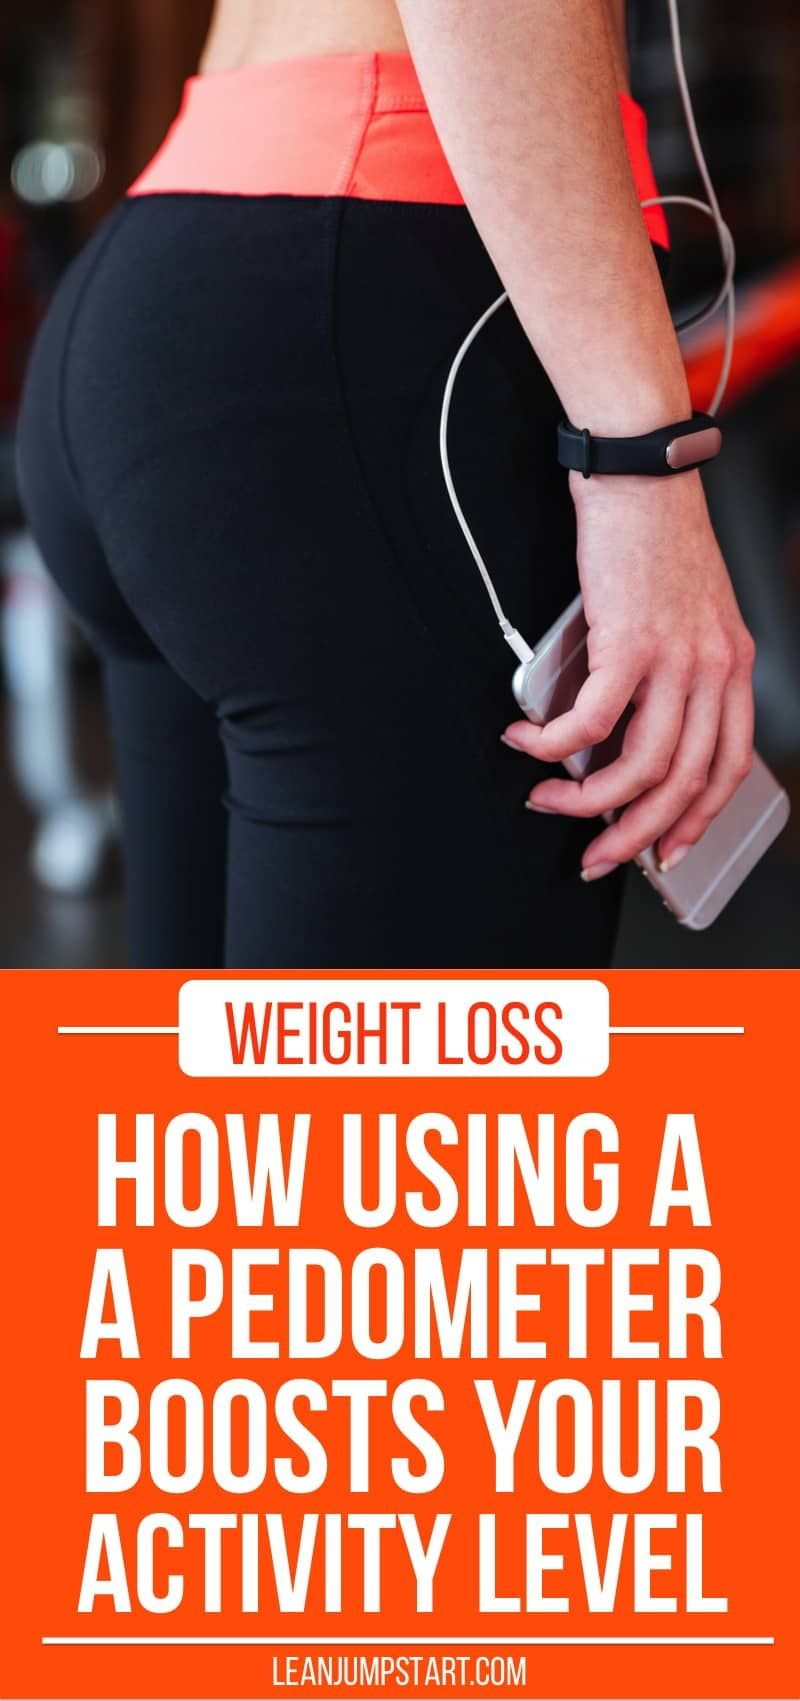 pictures How to Use a Pedometer to Lose Weight